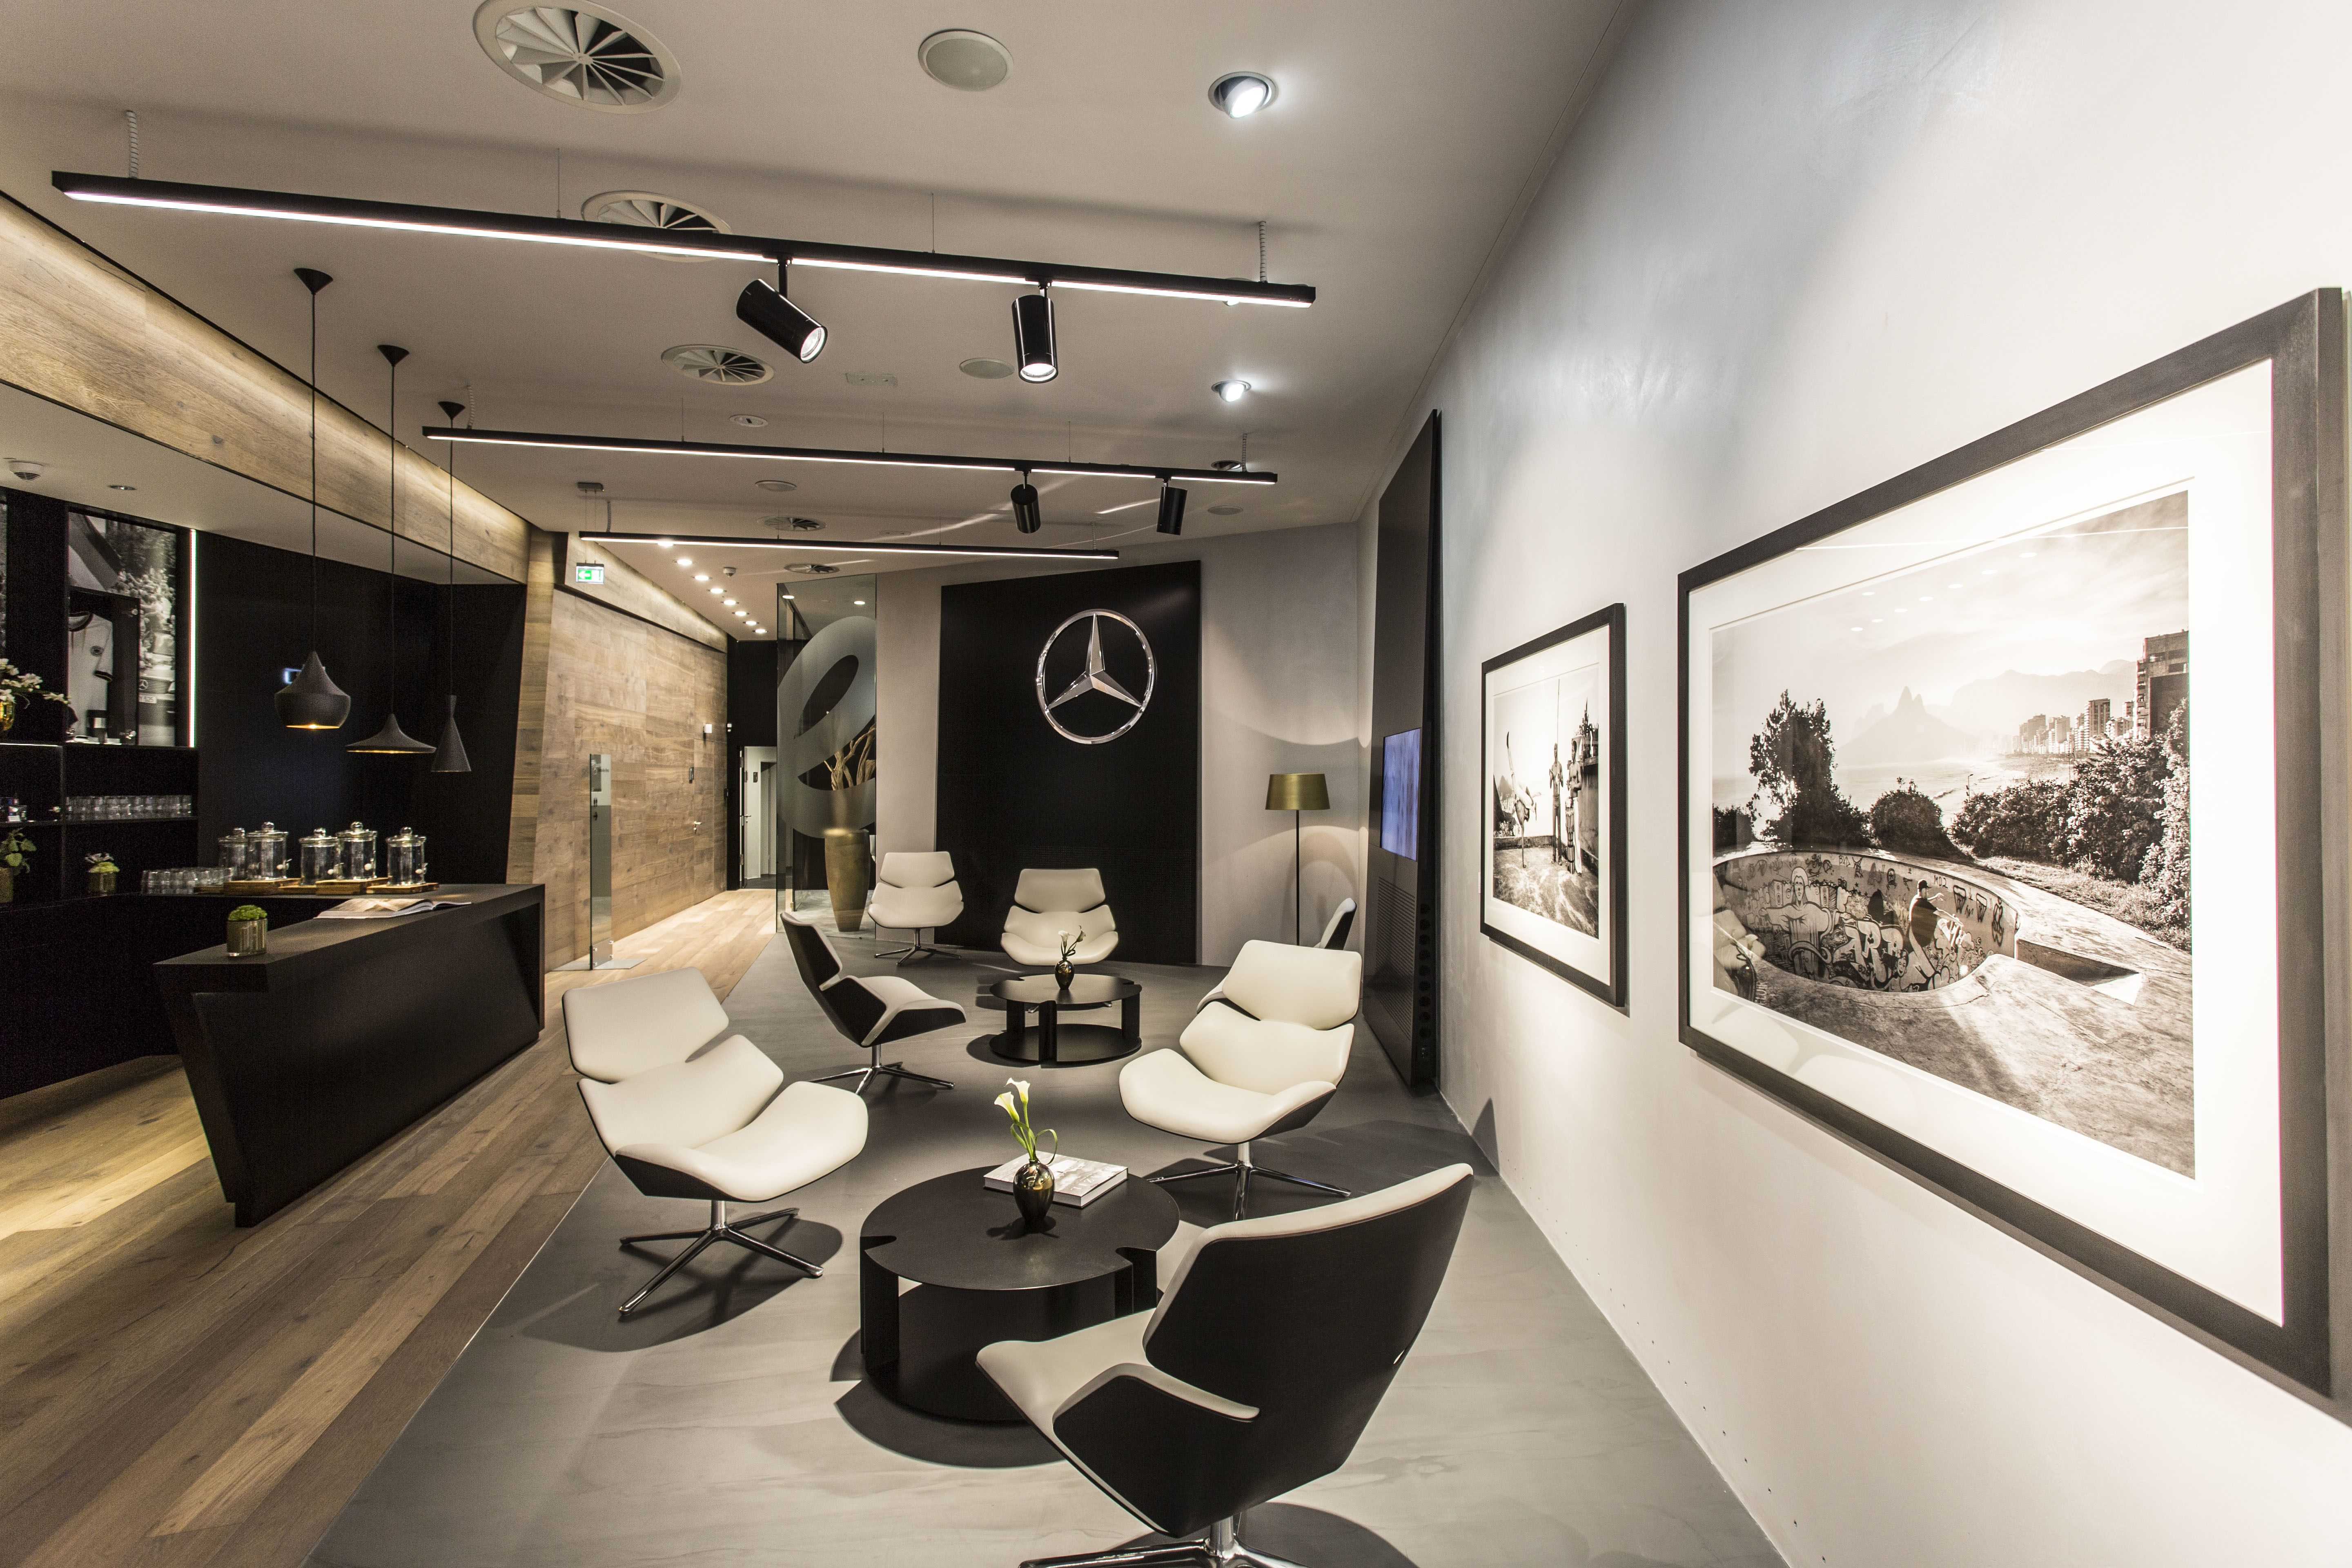 Mercedes me store in hamburg germany autode salong for Interior designer hamburg